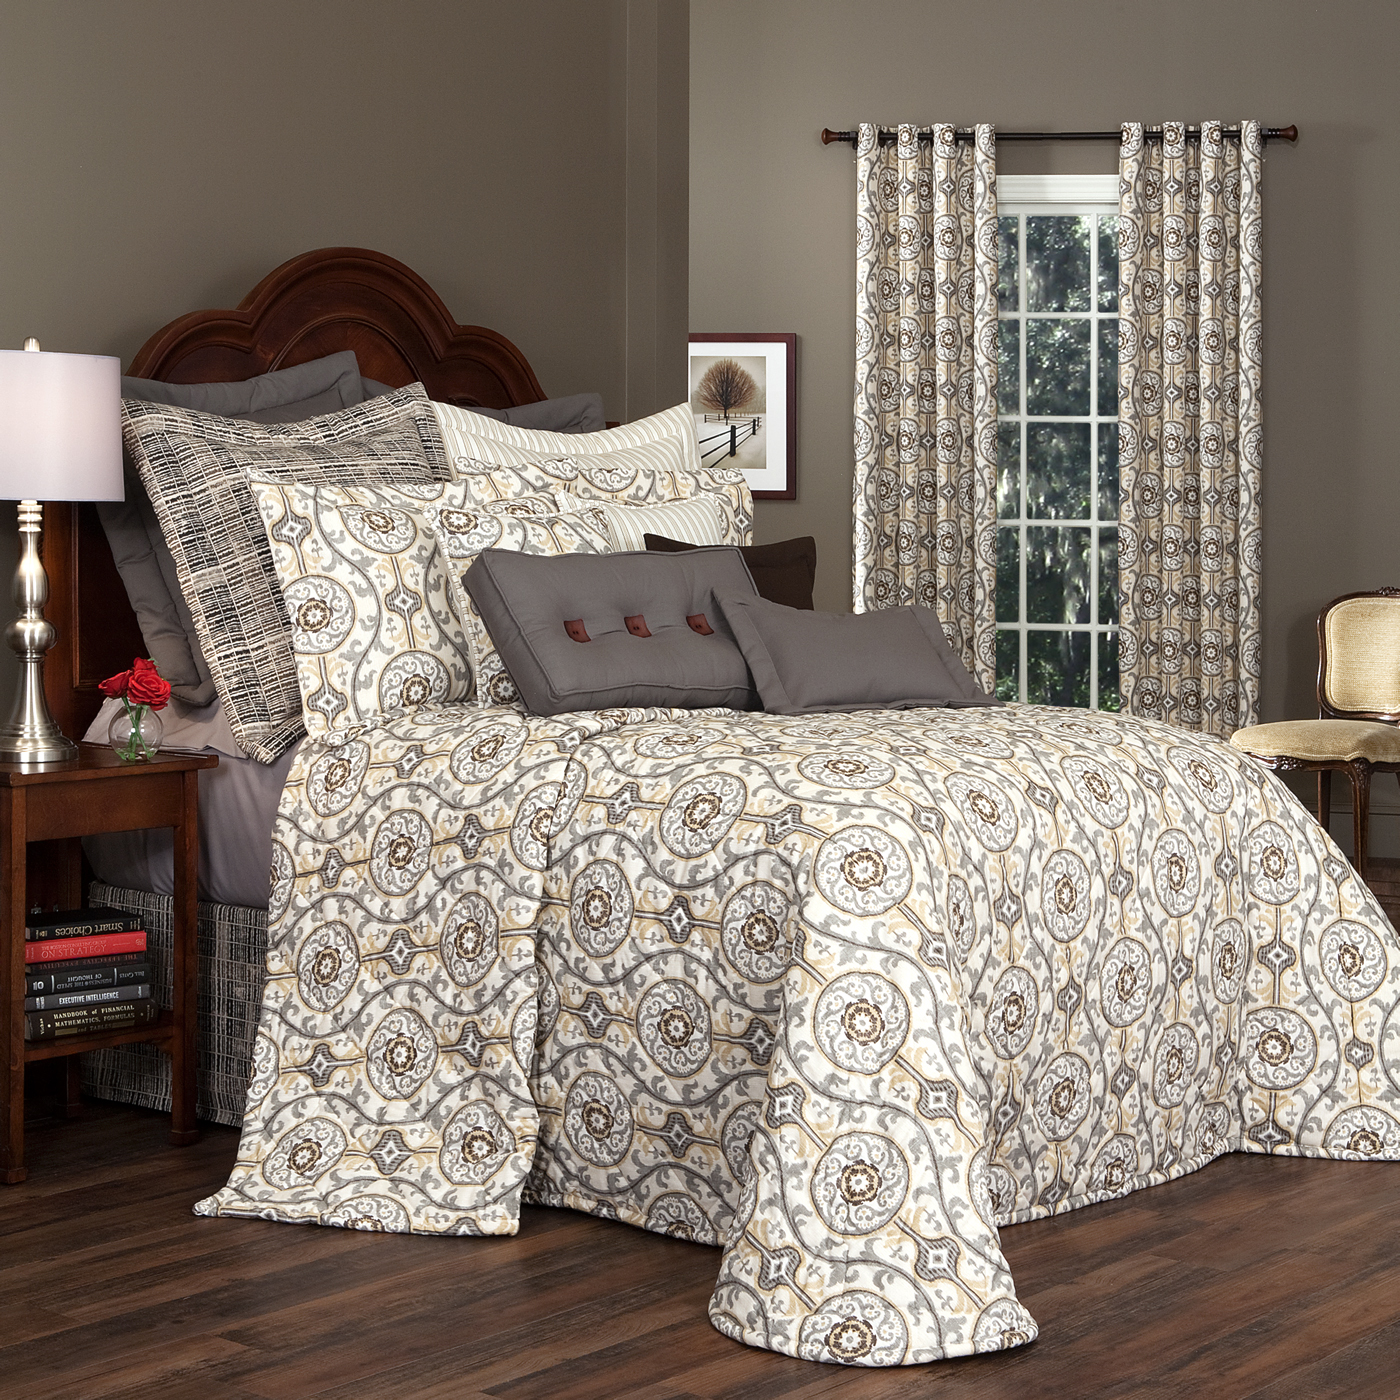 Soothing Bedspread Izmir By Thomasville 1 Oversized California King Bedspreads California King Coverlet Canada houzz 01 California King Bedspreads